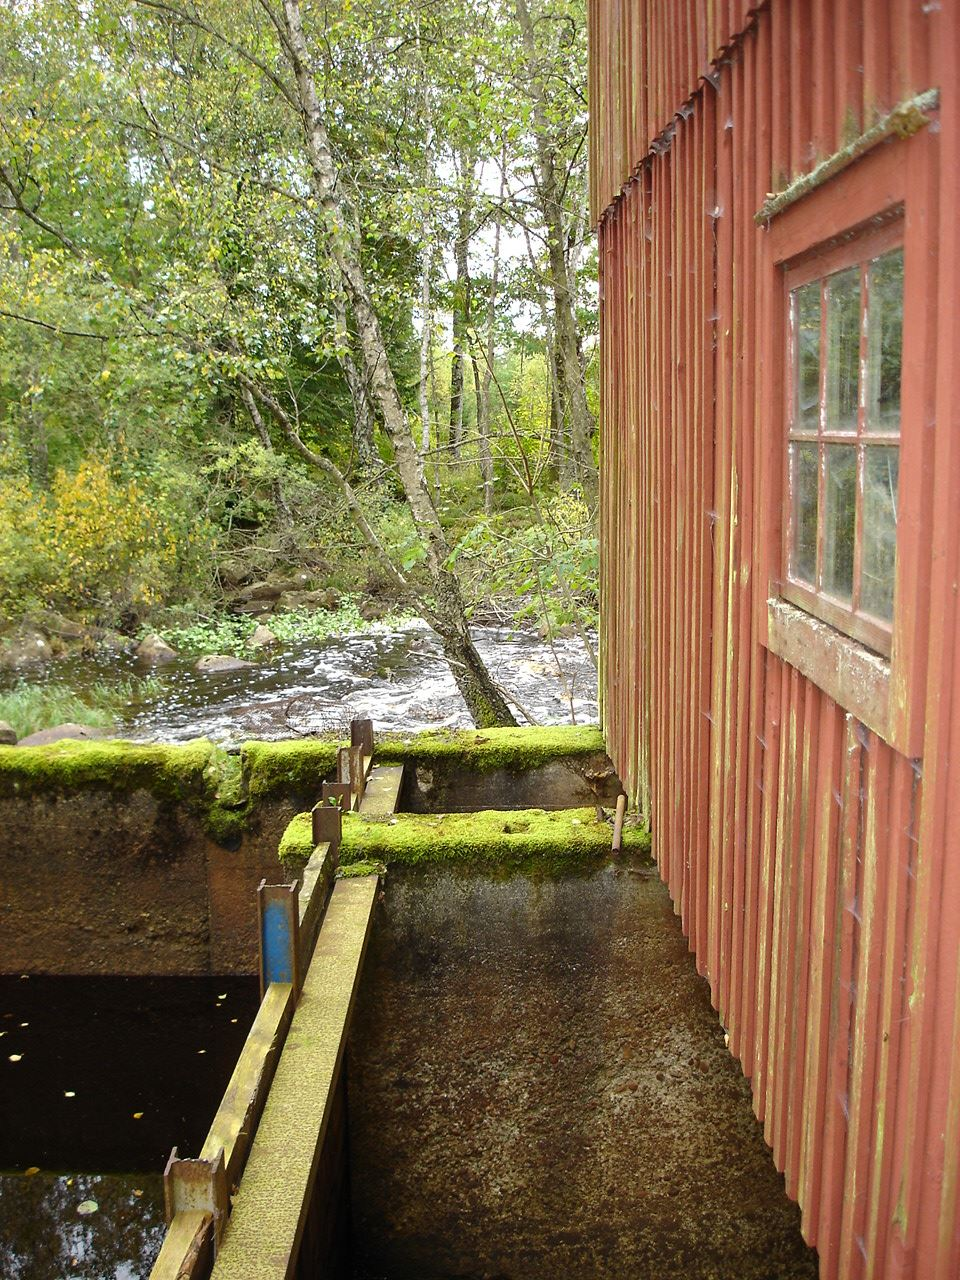 Guided tour at the old mill at Simontorp